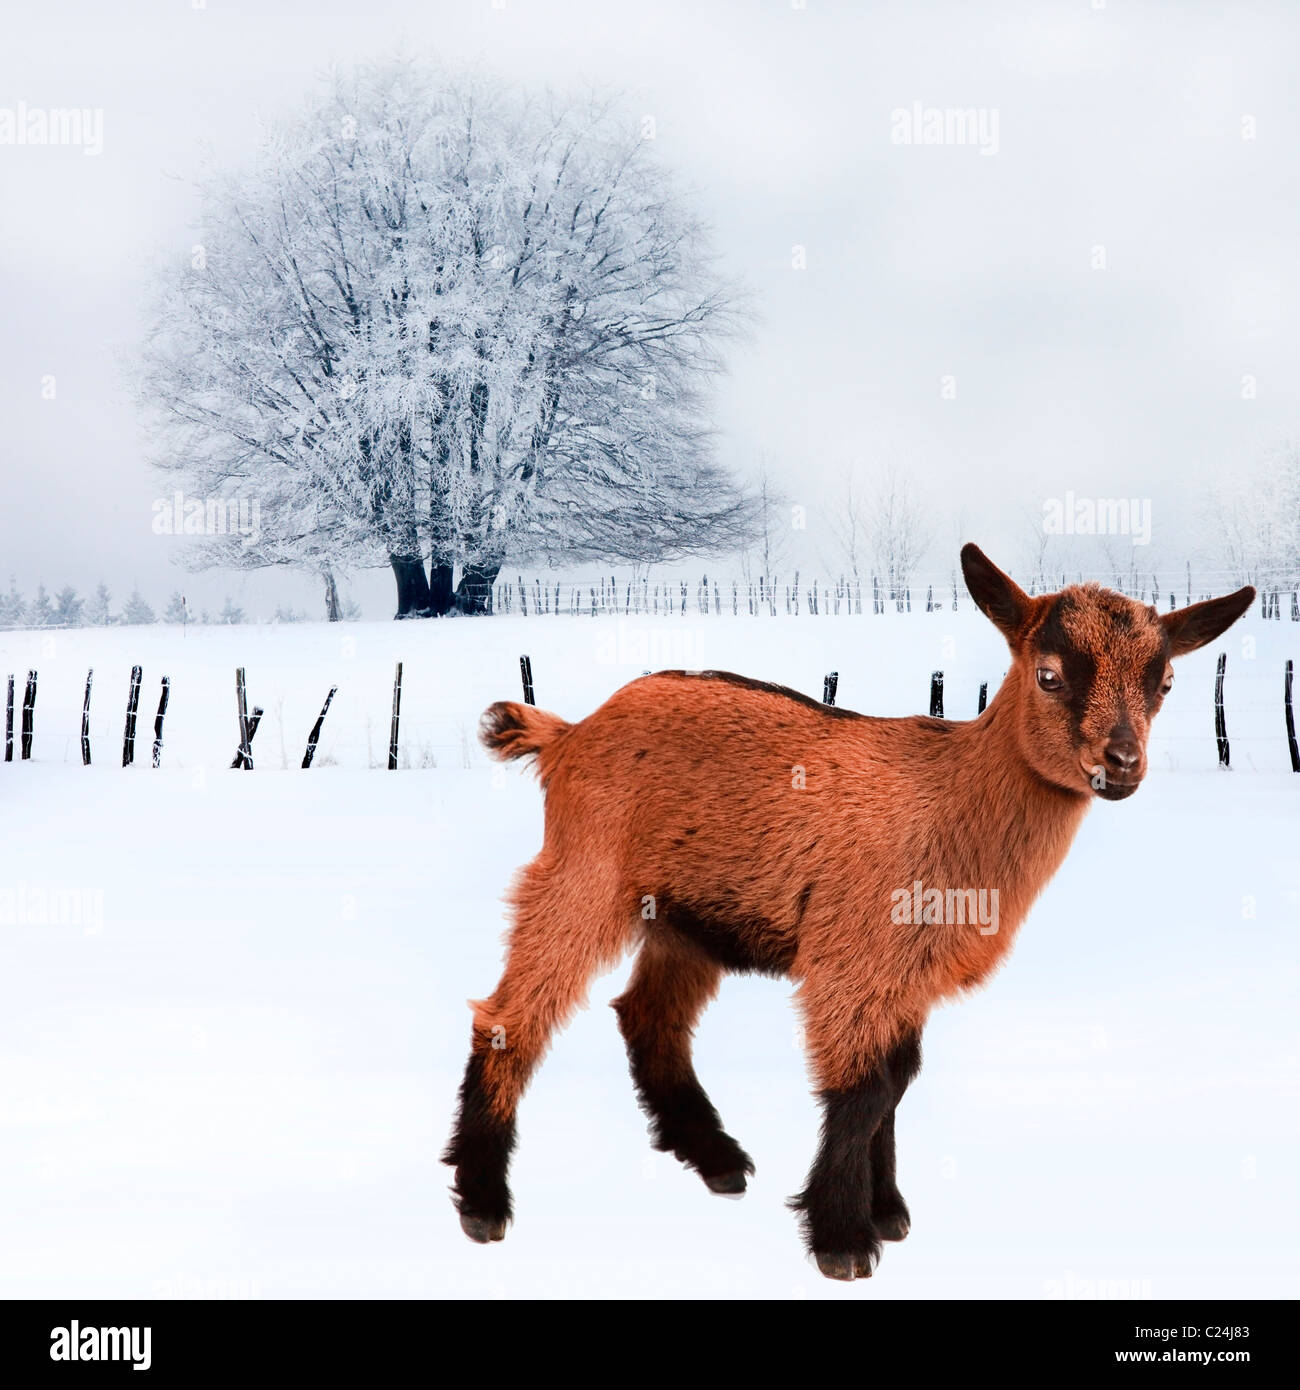 LANDSCAPE SNOW CHRISTMAS with CUTE  GOAT - Stock Image